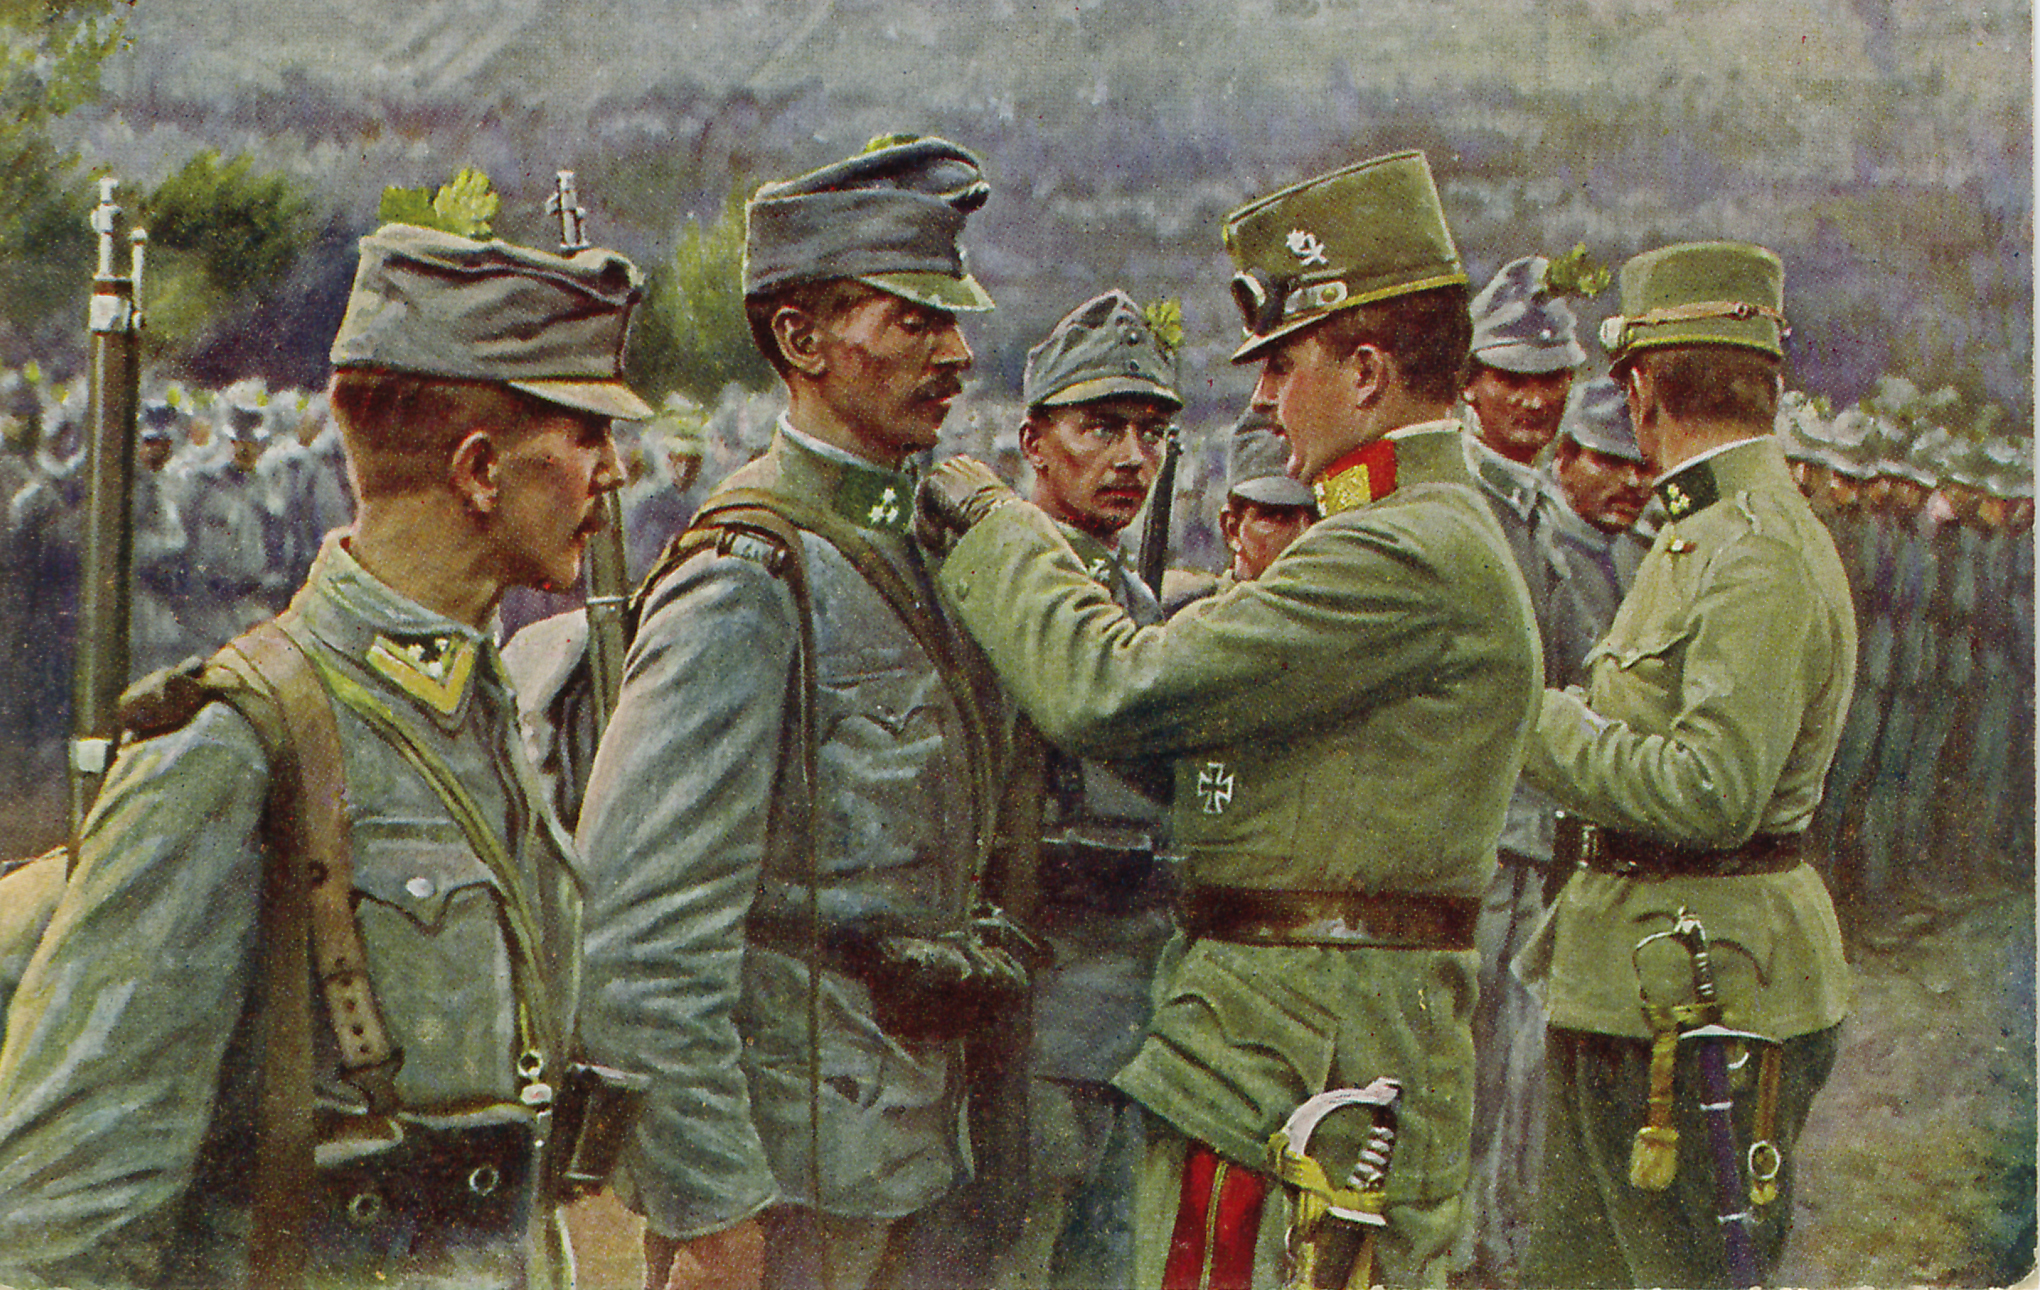 Emperor Karl Awards Medals to a Soldier on the battlefield, ca. 1916